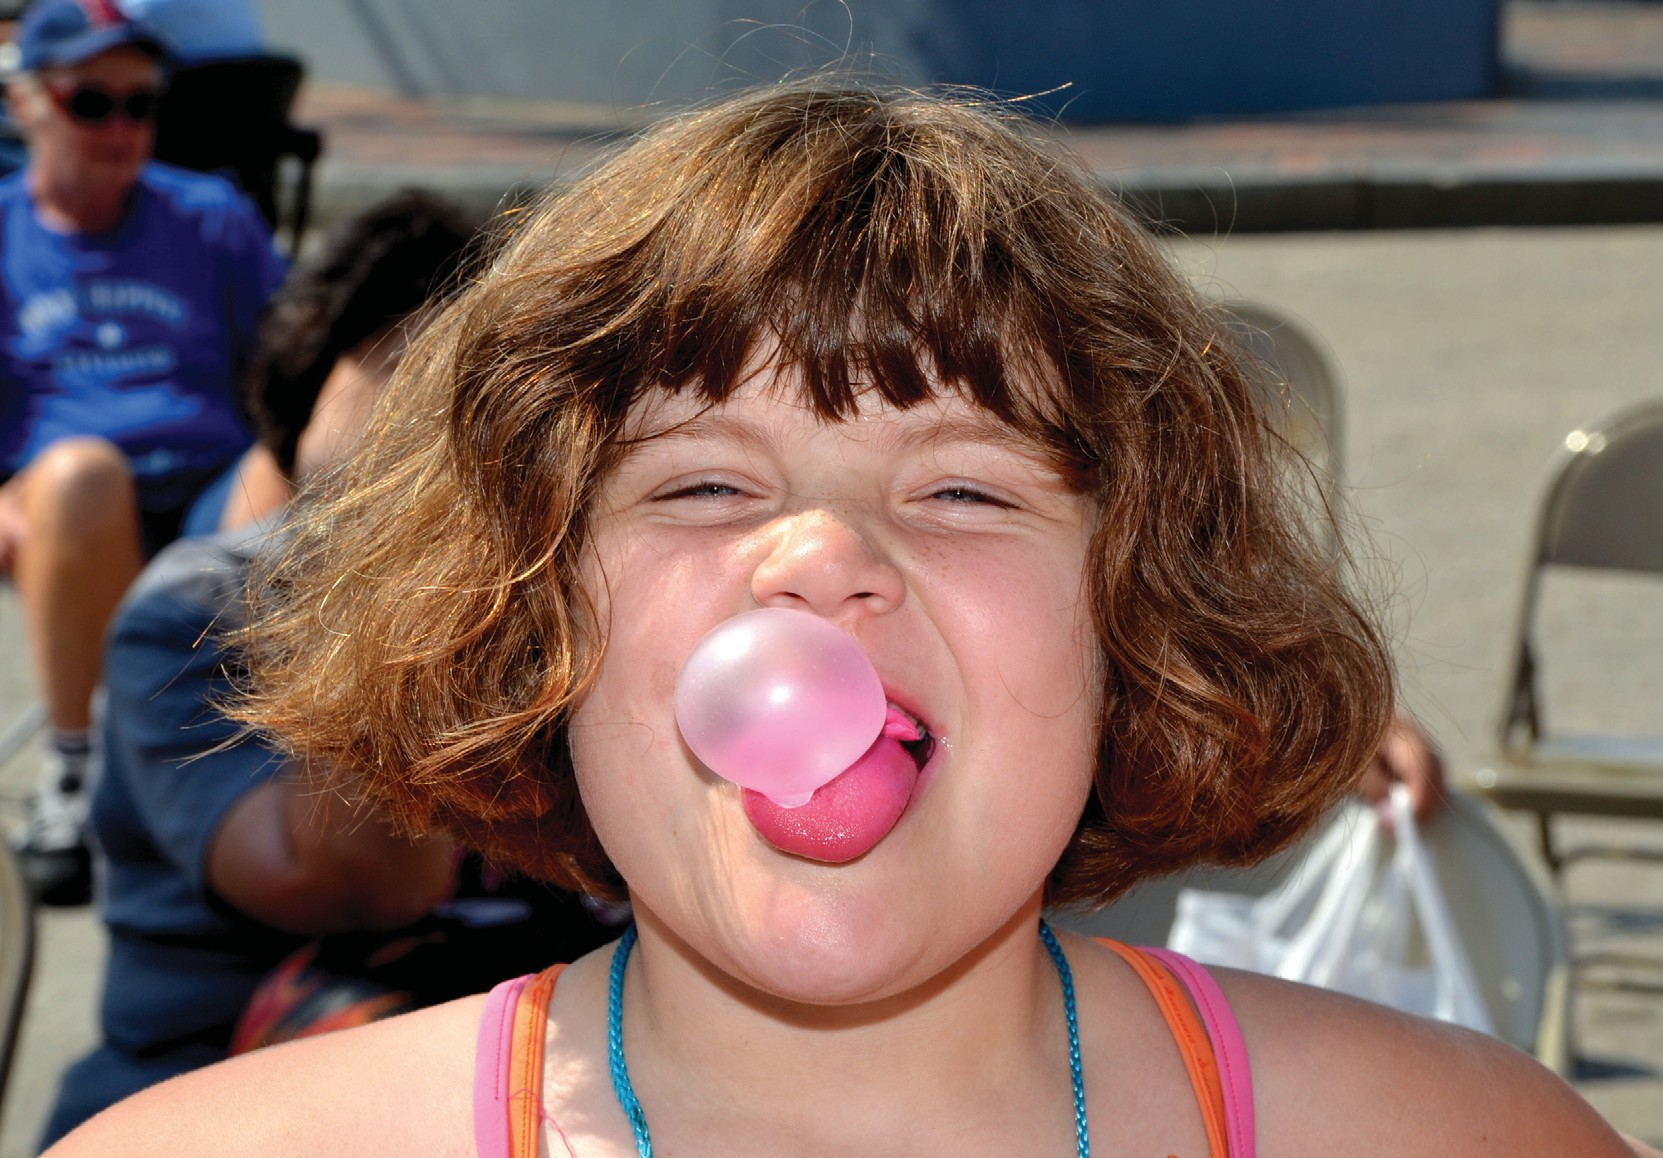 A participant in a previous year's Beach Olympics in Old Orchard Beach competes in the bubble gum blowing contest.